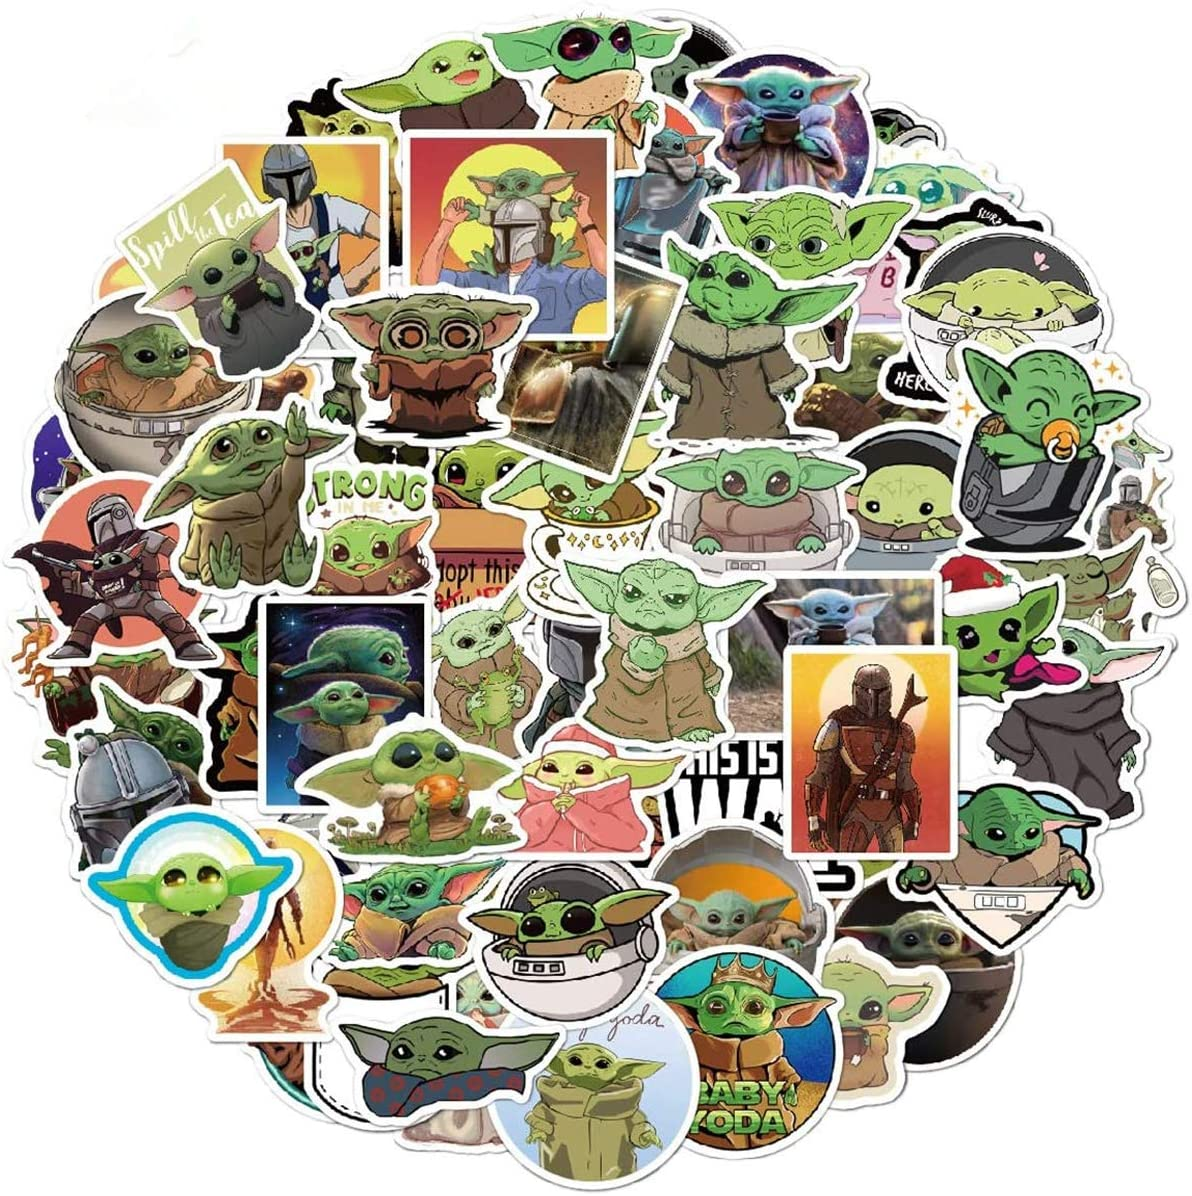 Mosteck 72Pcs Yoda Baby Star Wars Cartoon Mix Graffiti Sticker Vinyl Graffiti Decals for Laptop Car Kids Book Skateboard Moto Bike Luggage Snowboard